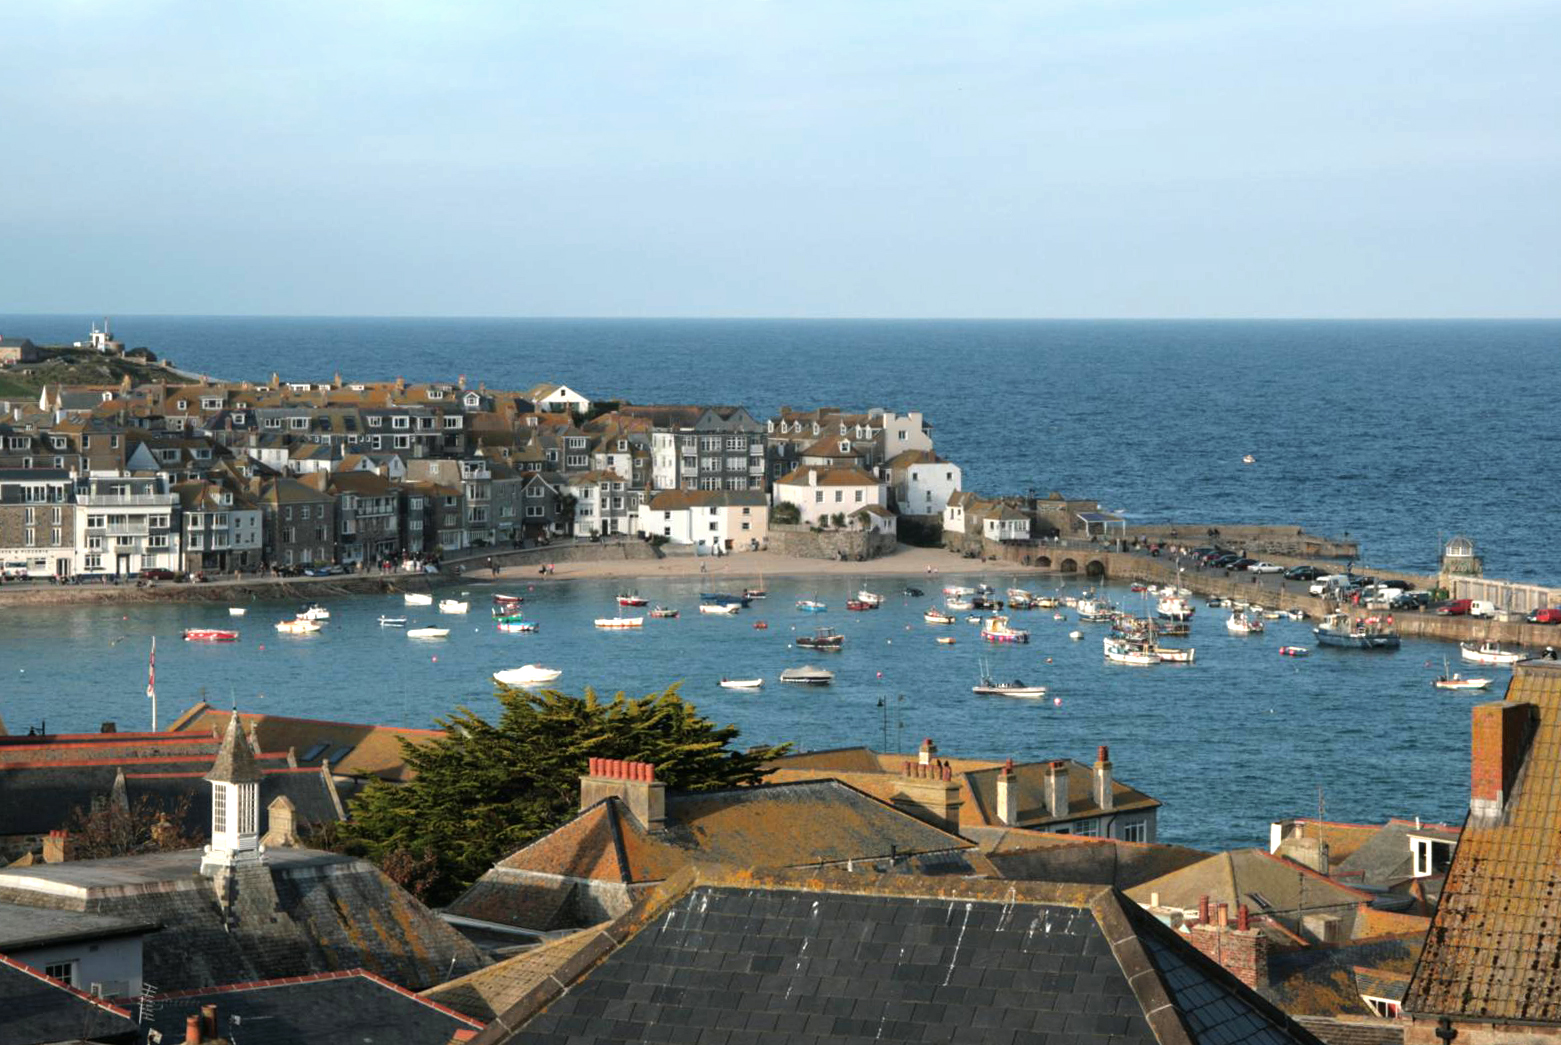 St Ives Harbour #cornwall #fishing-village, #summer-vacations, #england #southcoast